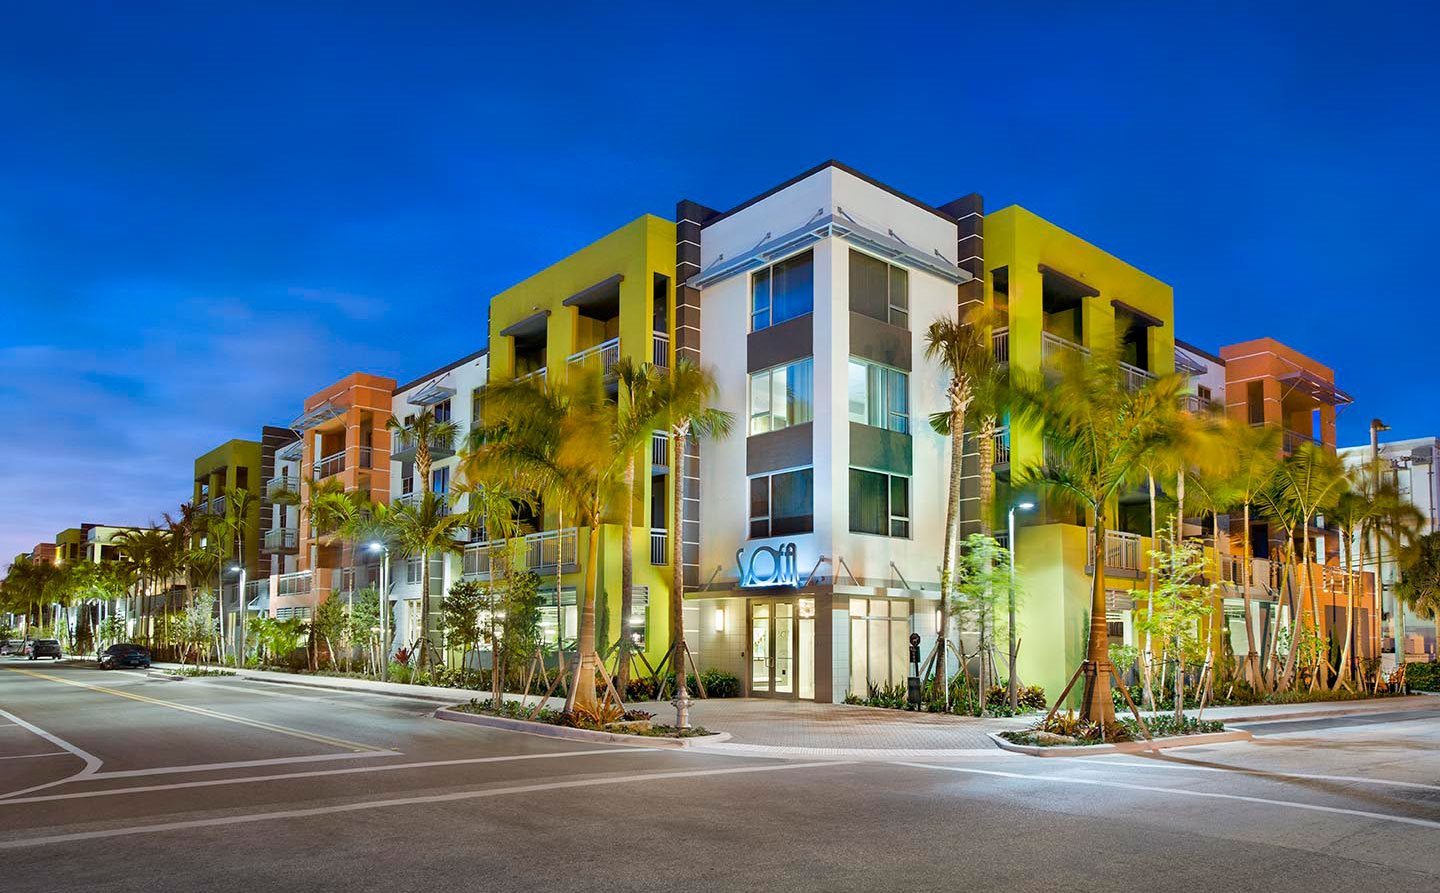 Eye Catching External View Of The Property at SofA Downtown Luxury Apartments, Delray Beach